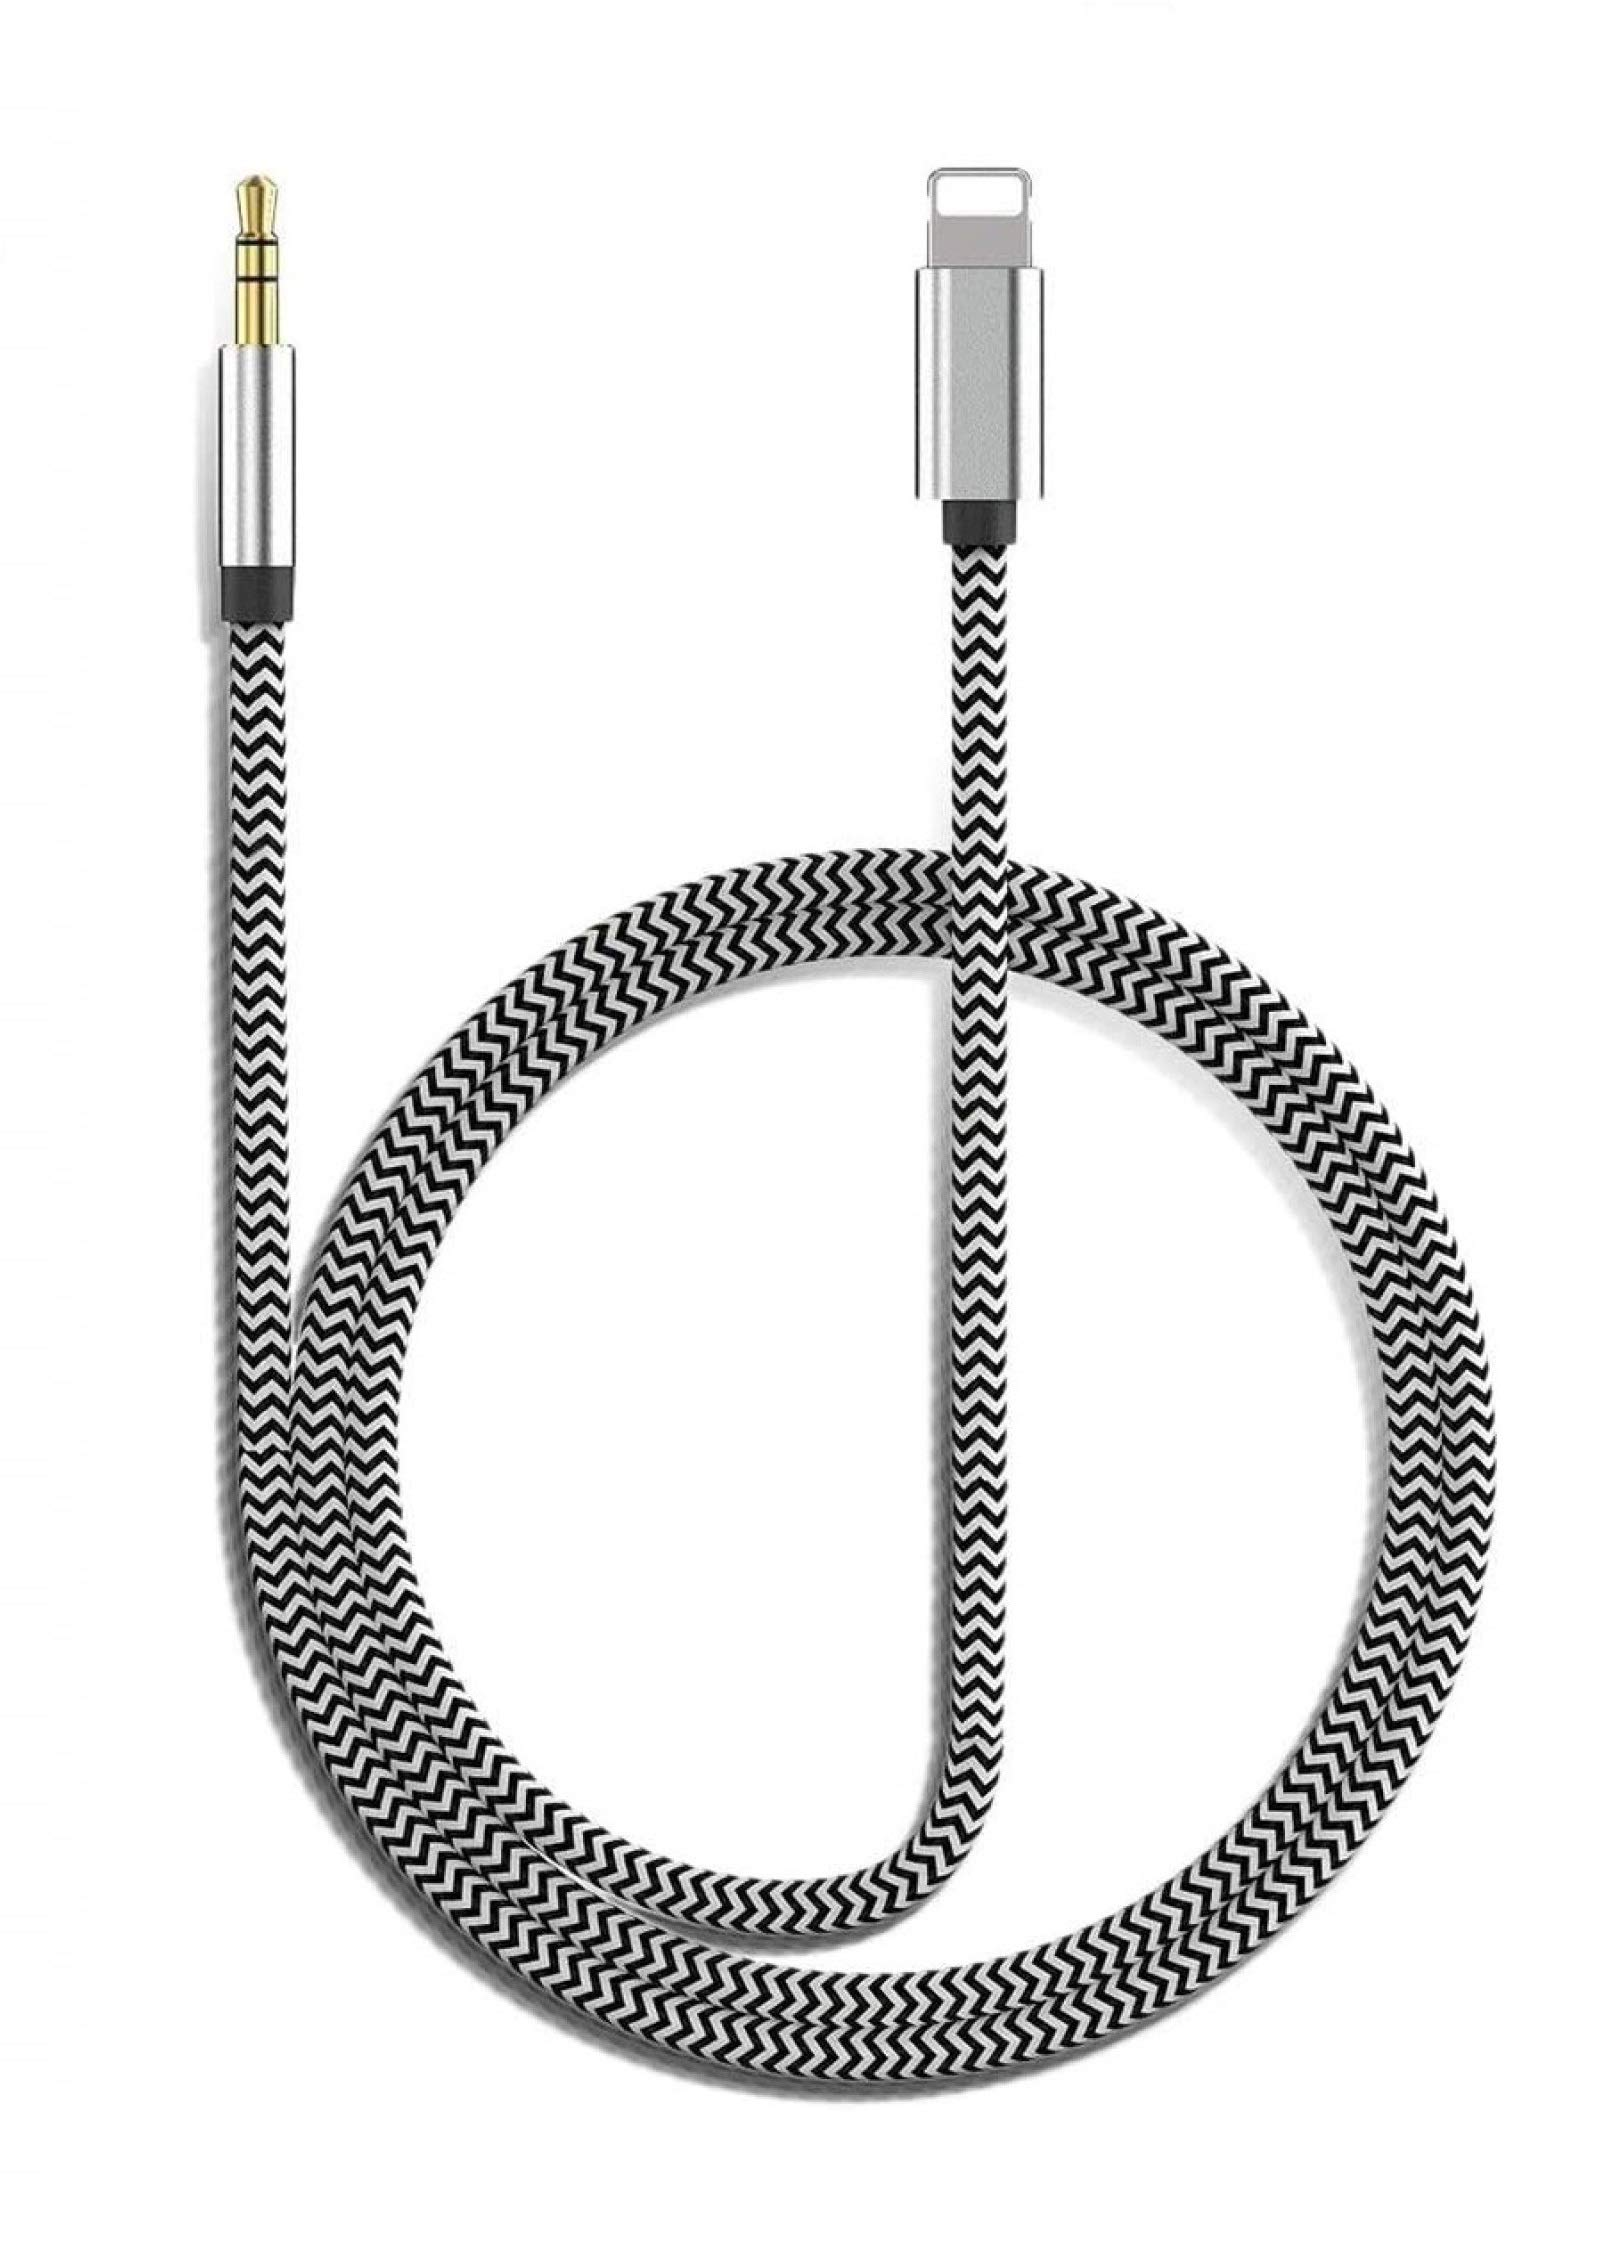 Speaker Lightning to 3.5mm Audio Stereo Cable for iPhone 11//11 Pro//XS//XR//X 8 7 6//iPad//iPod to Car//Home Stereo Aux Cord for iPhone Headphone MFi Certified Black